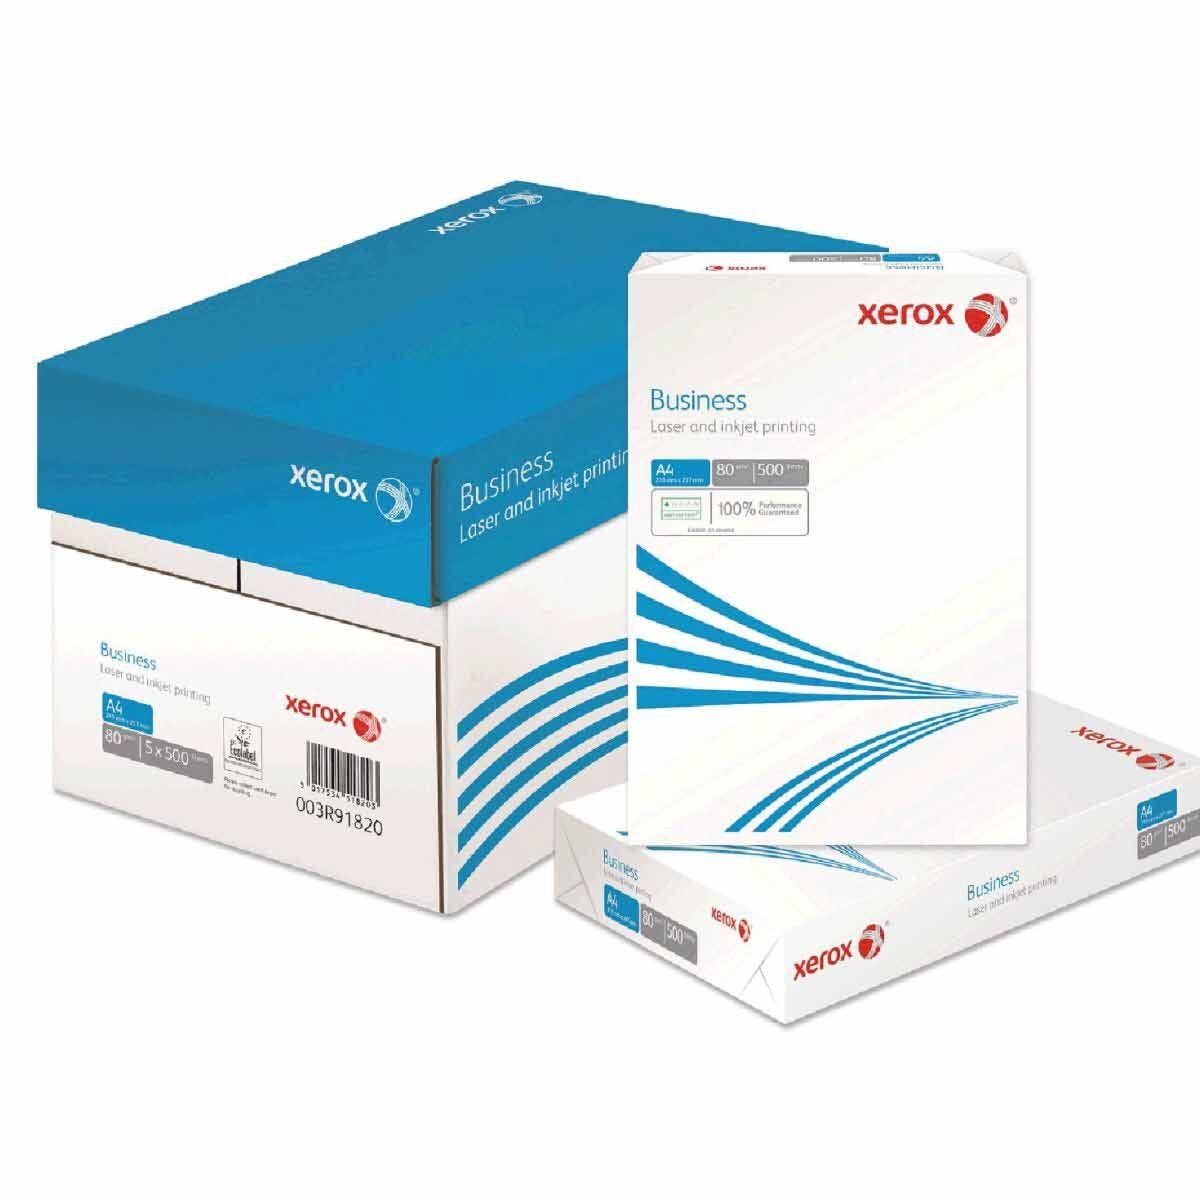 Xerox Business Paper A4 80gsm Pack of 5